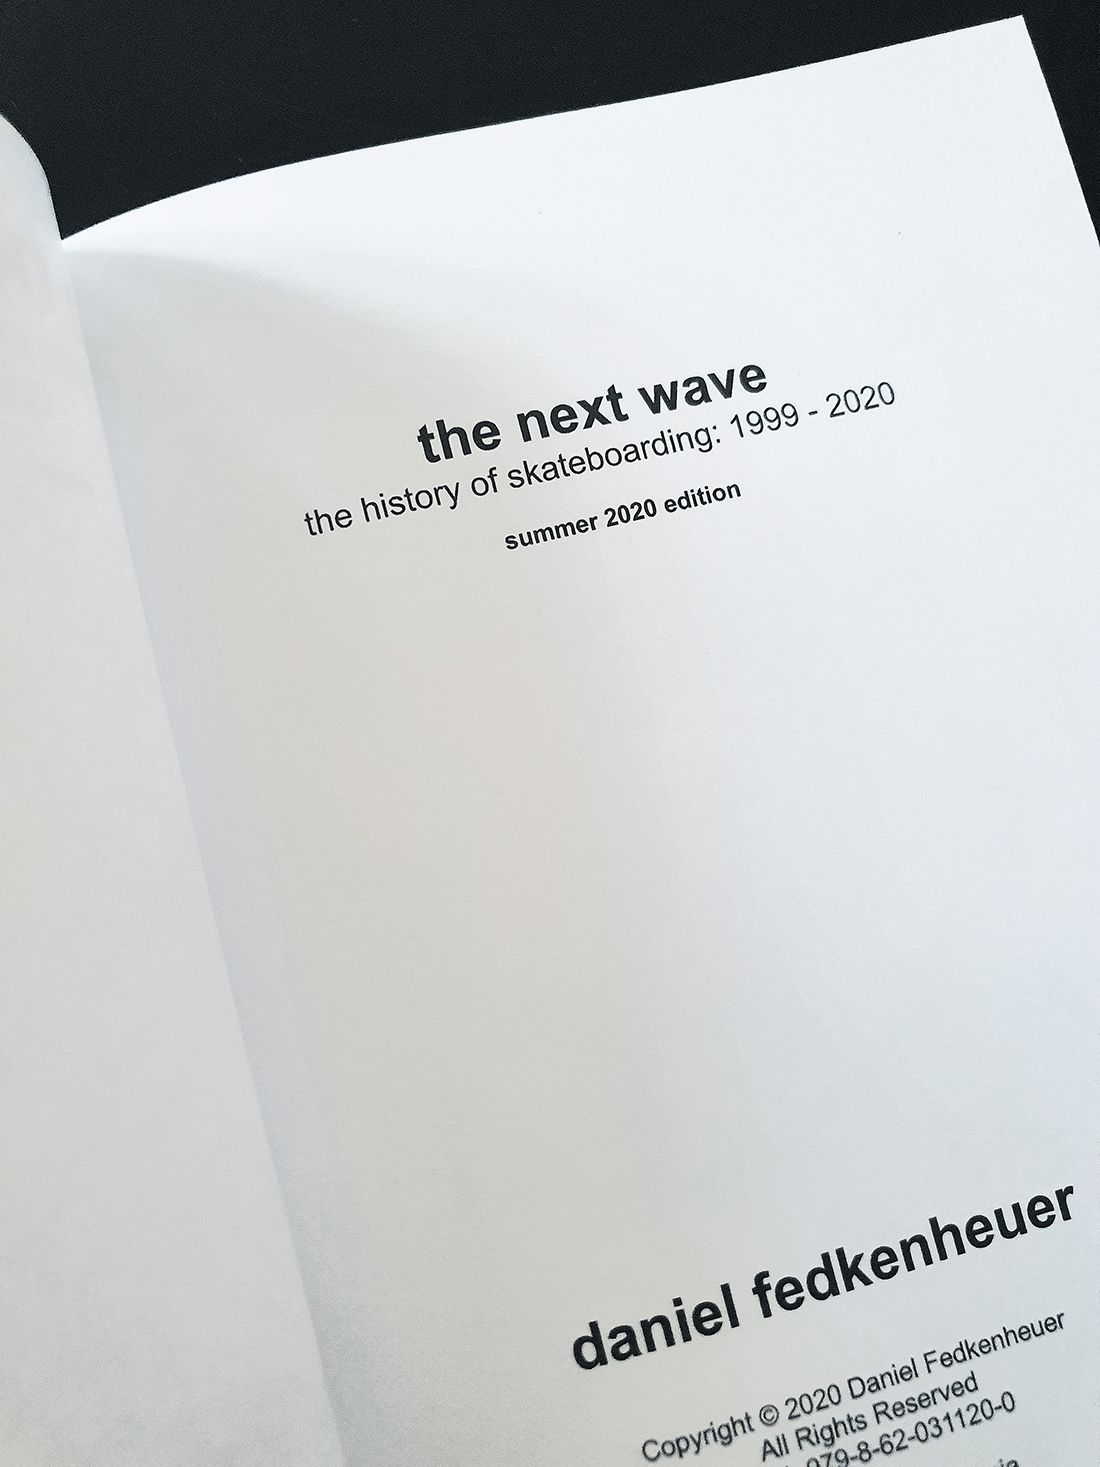 The Next Wave Book Par Daniel Fedkenheuer HD 1